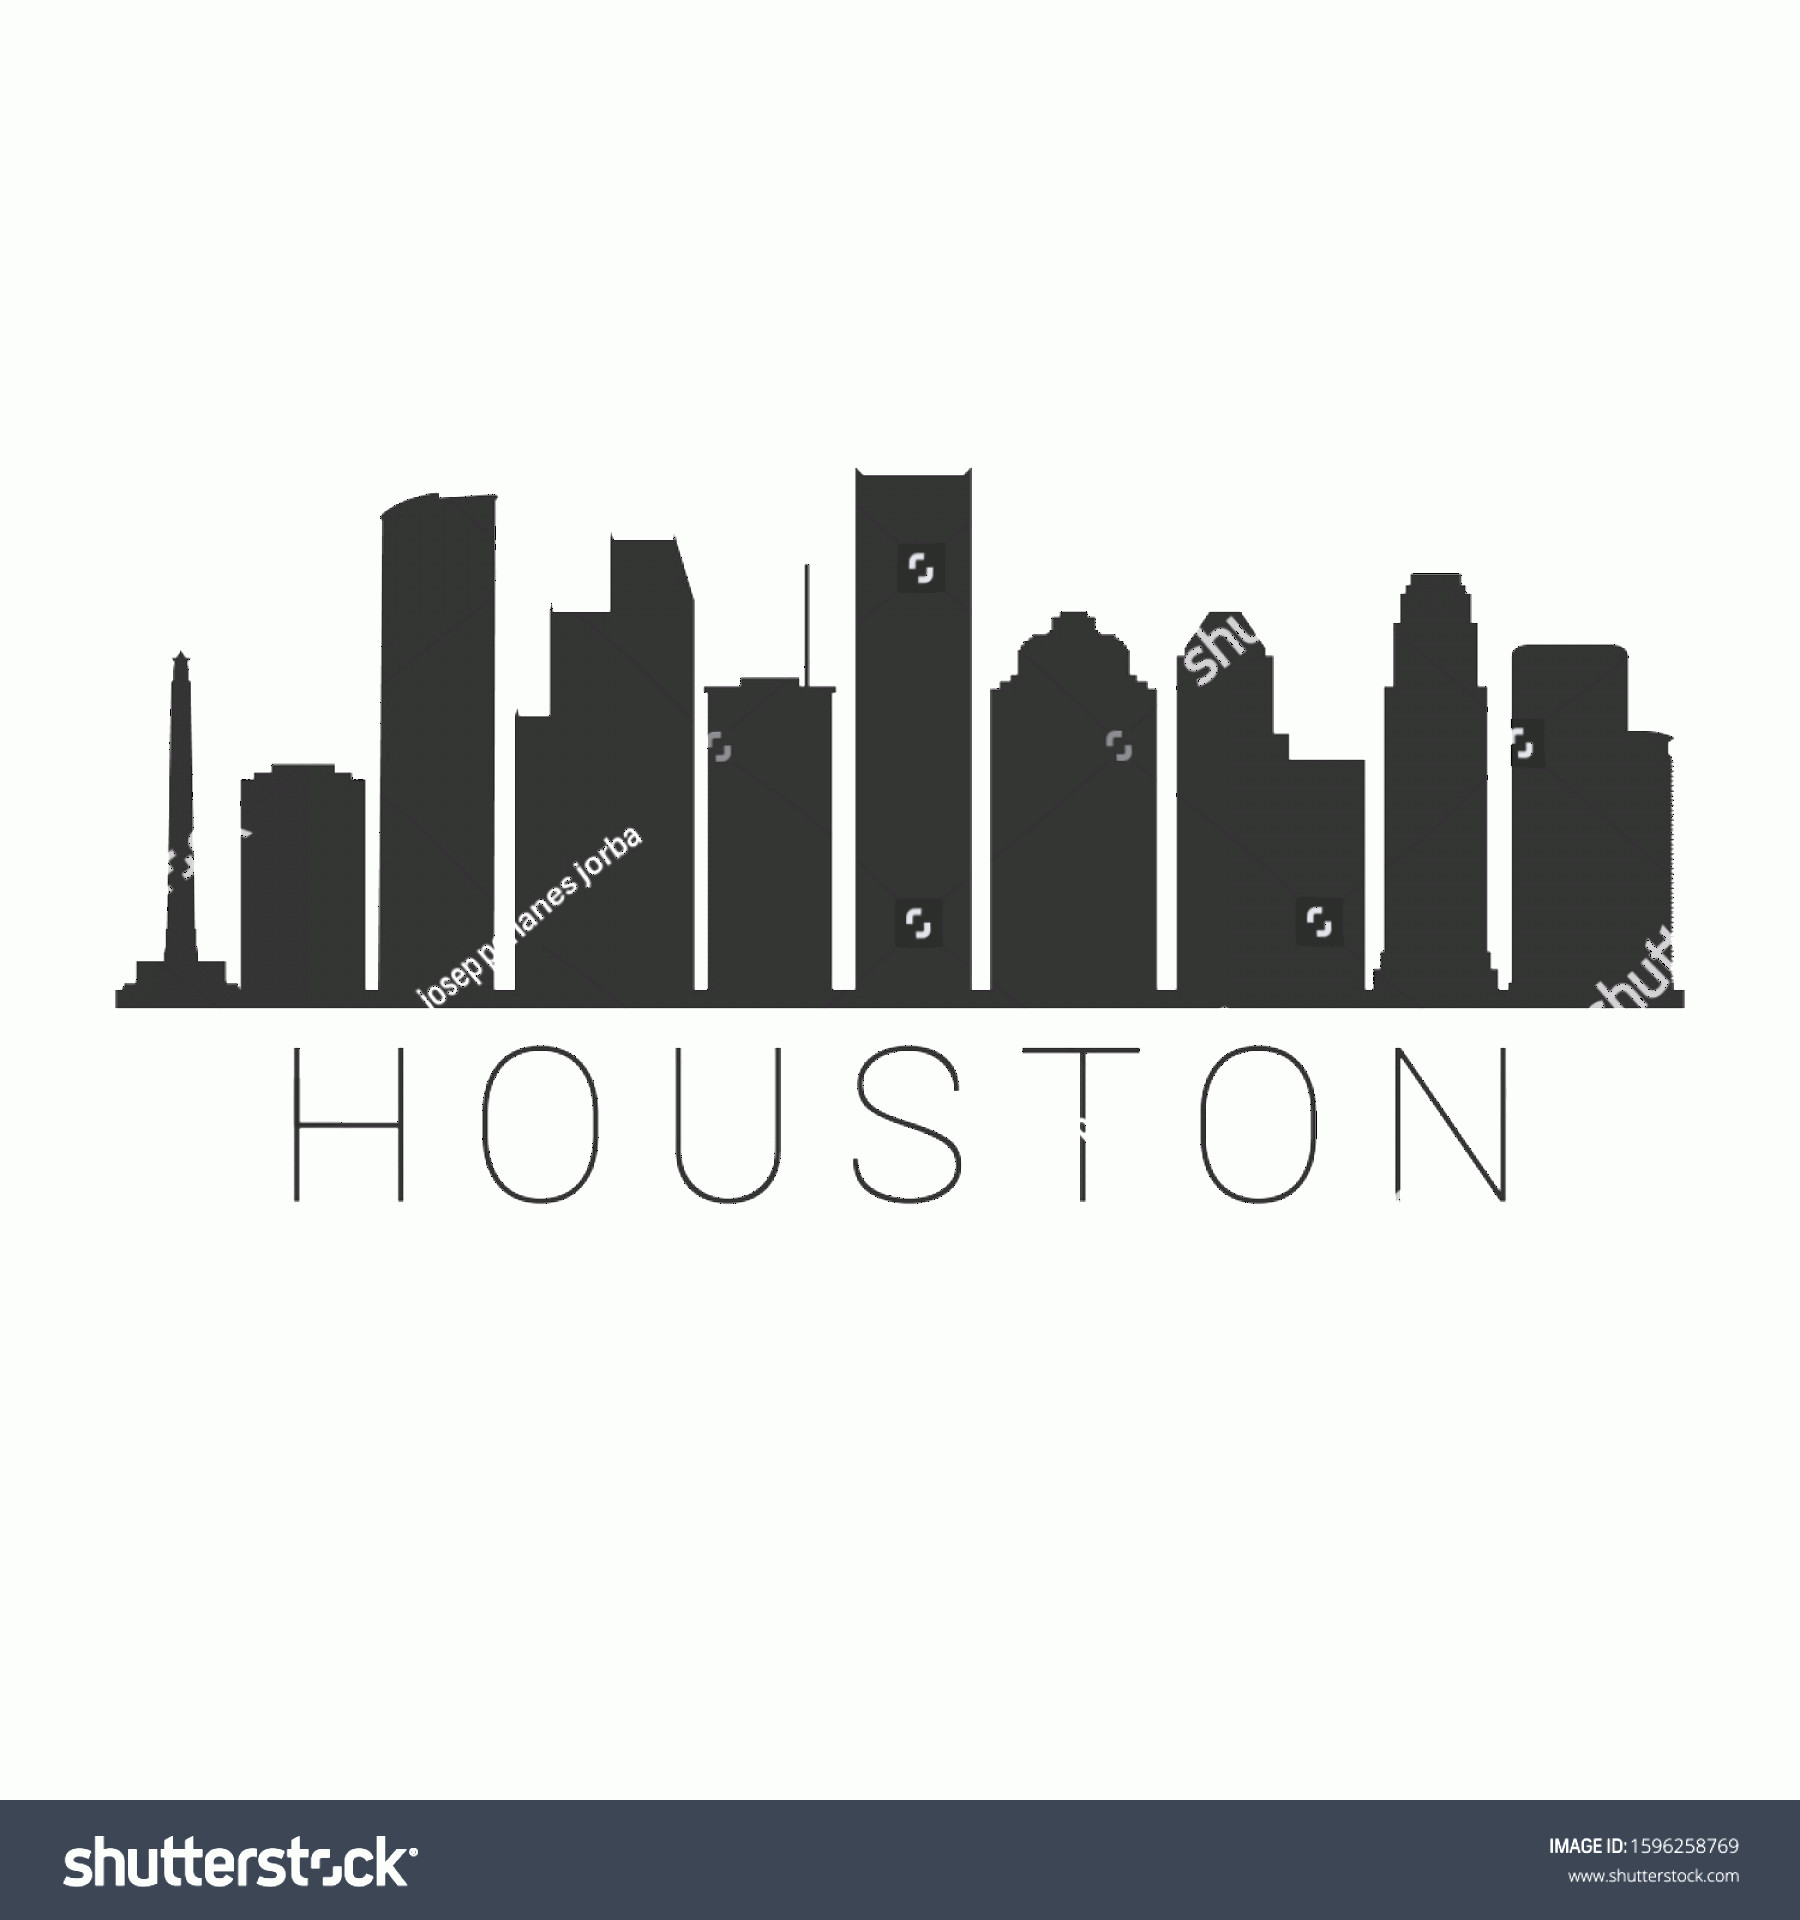 Vector Houston TX: Houston Texas Skyline Silhouette City Design